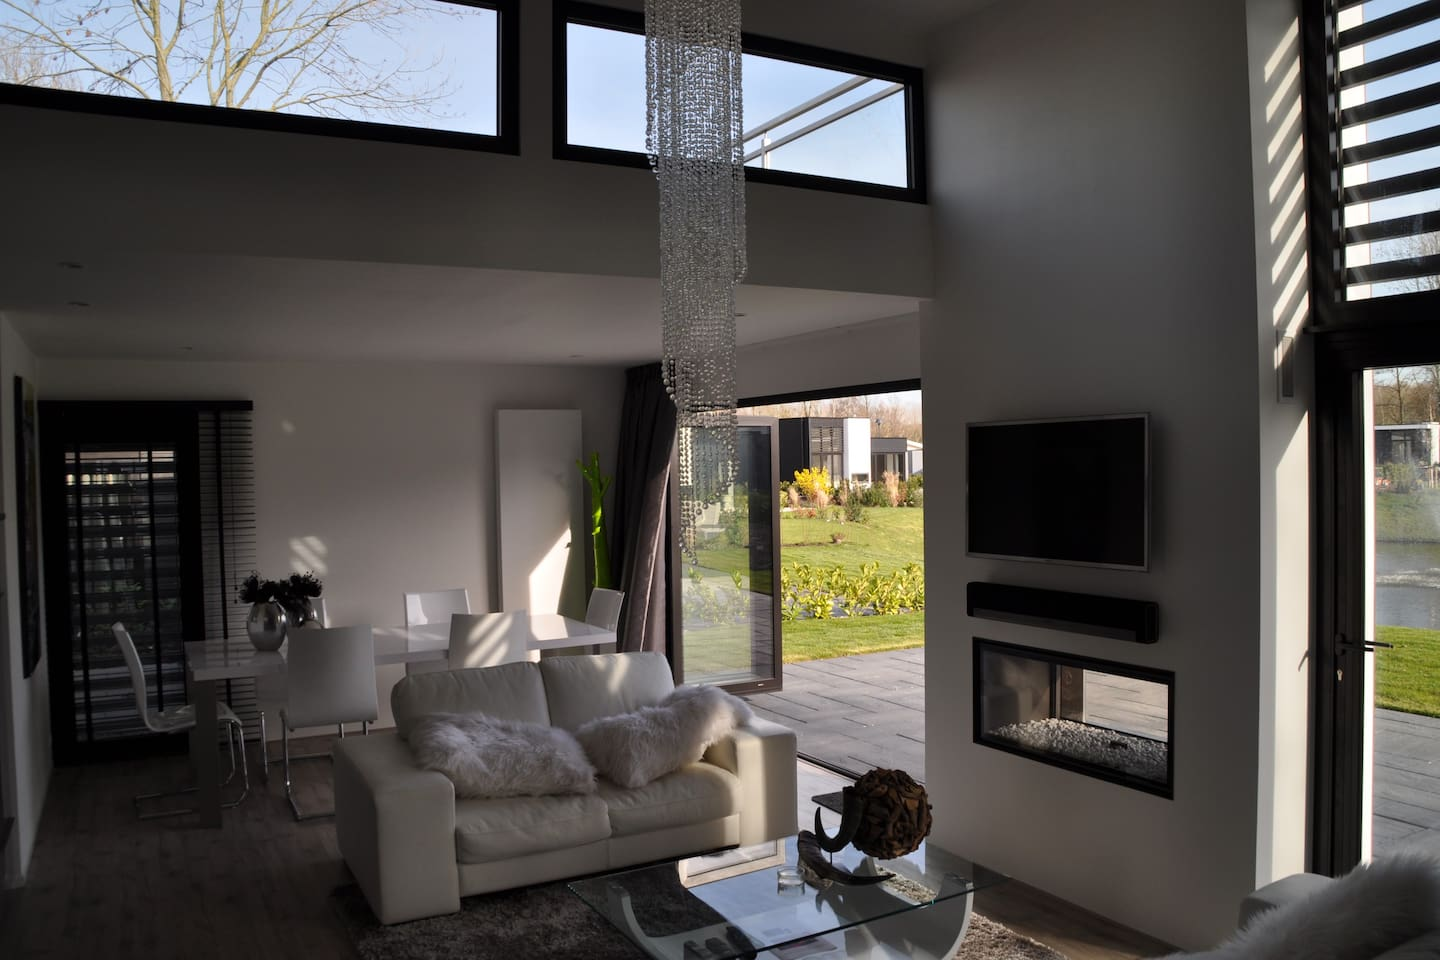 Brandnew (january 2014) luxurious villa only 10 minutes by train/car from Amsterdam + Haarlem and Zandvoort beach.